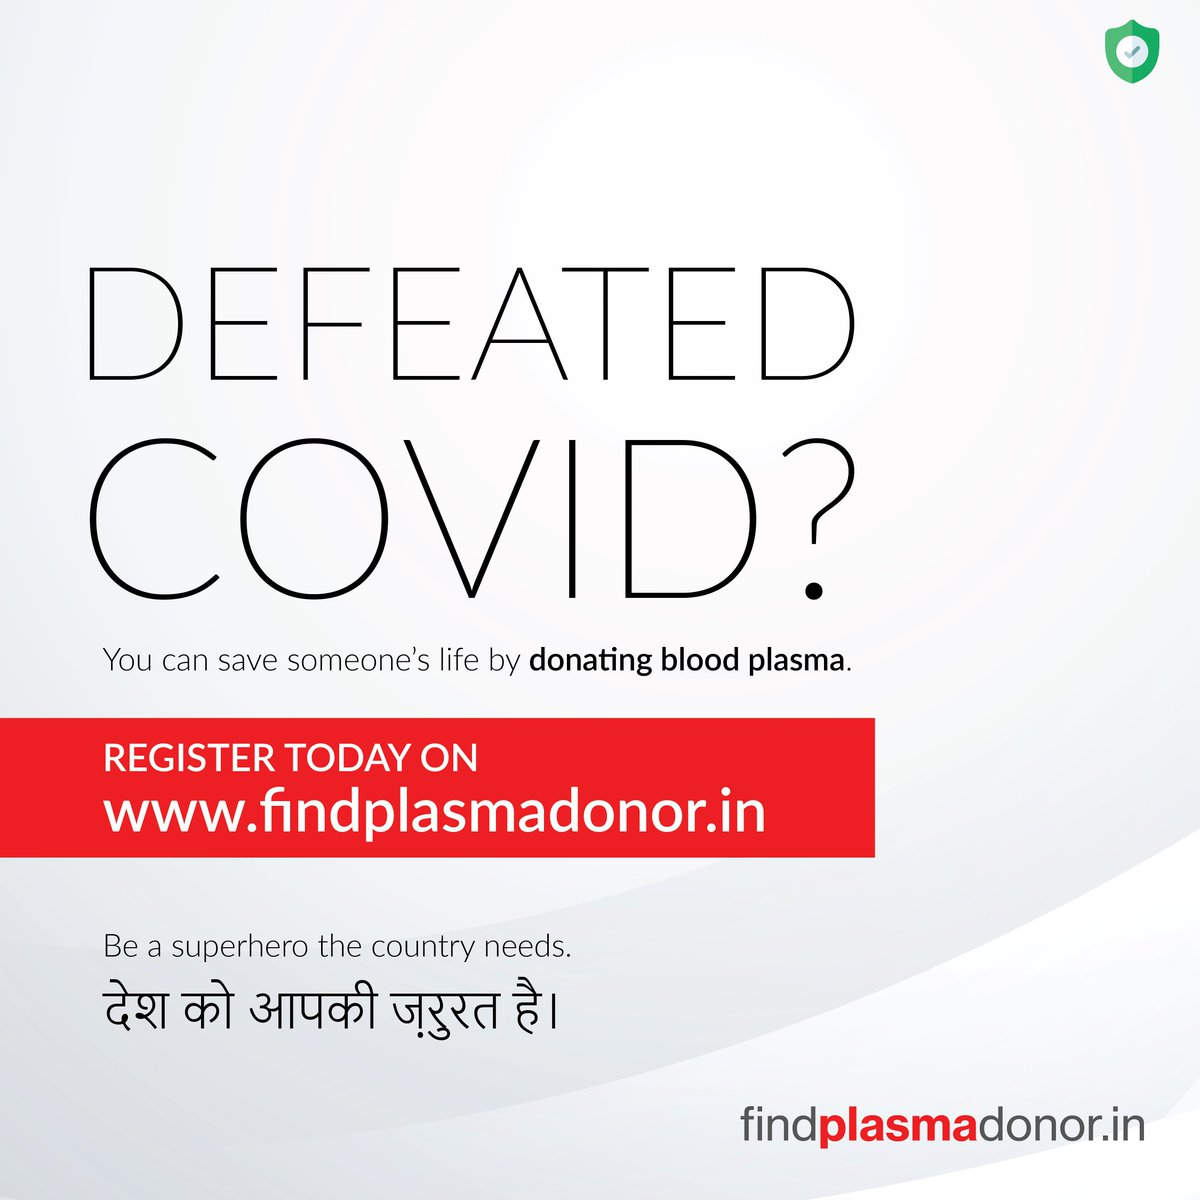 Defeated Covid ? Help someone by saving their life.  Donate #Plasma!  CovidResources Verified 200+ people searched for donors on portal. INDORE Mumbai Pune raipur  #Pune #COVIDEmergencyIndia #CovidSOS #CoronaSecondWave 🦠 😷 https://t.co/1pfGruMQot